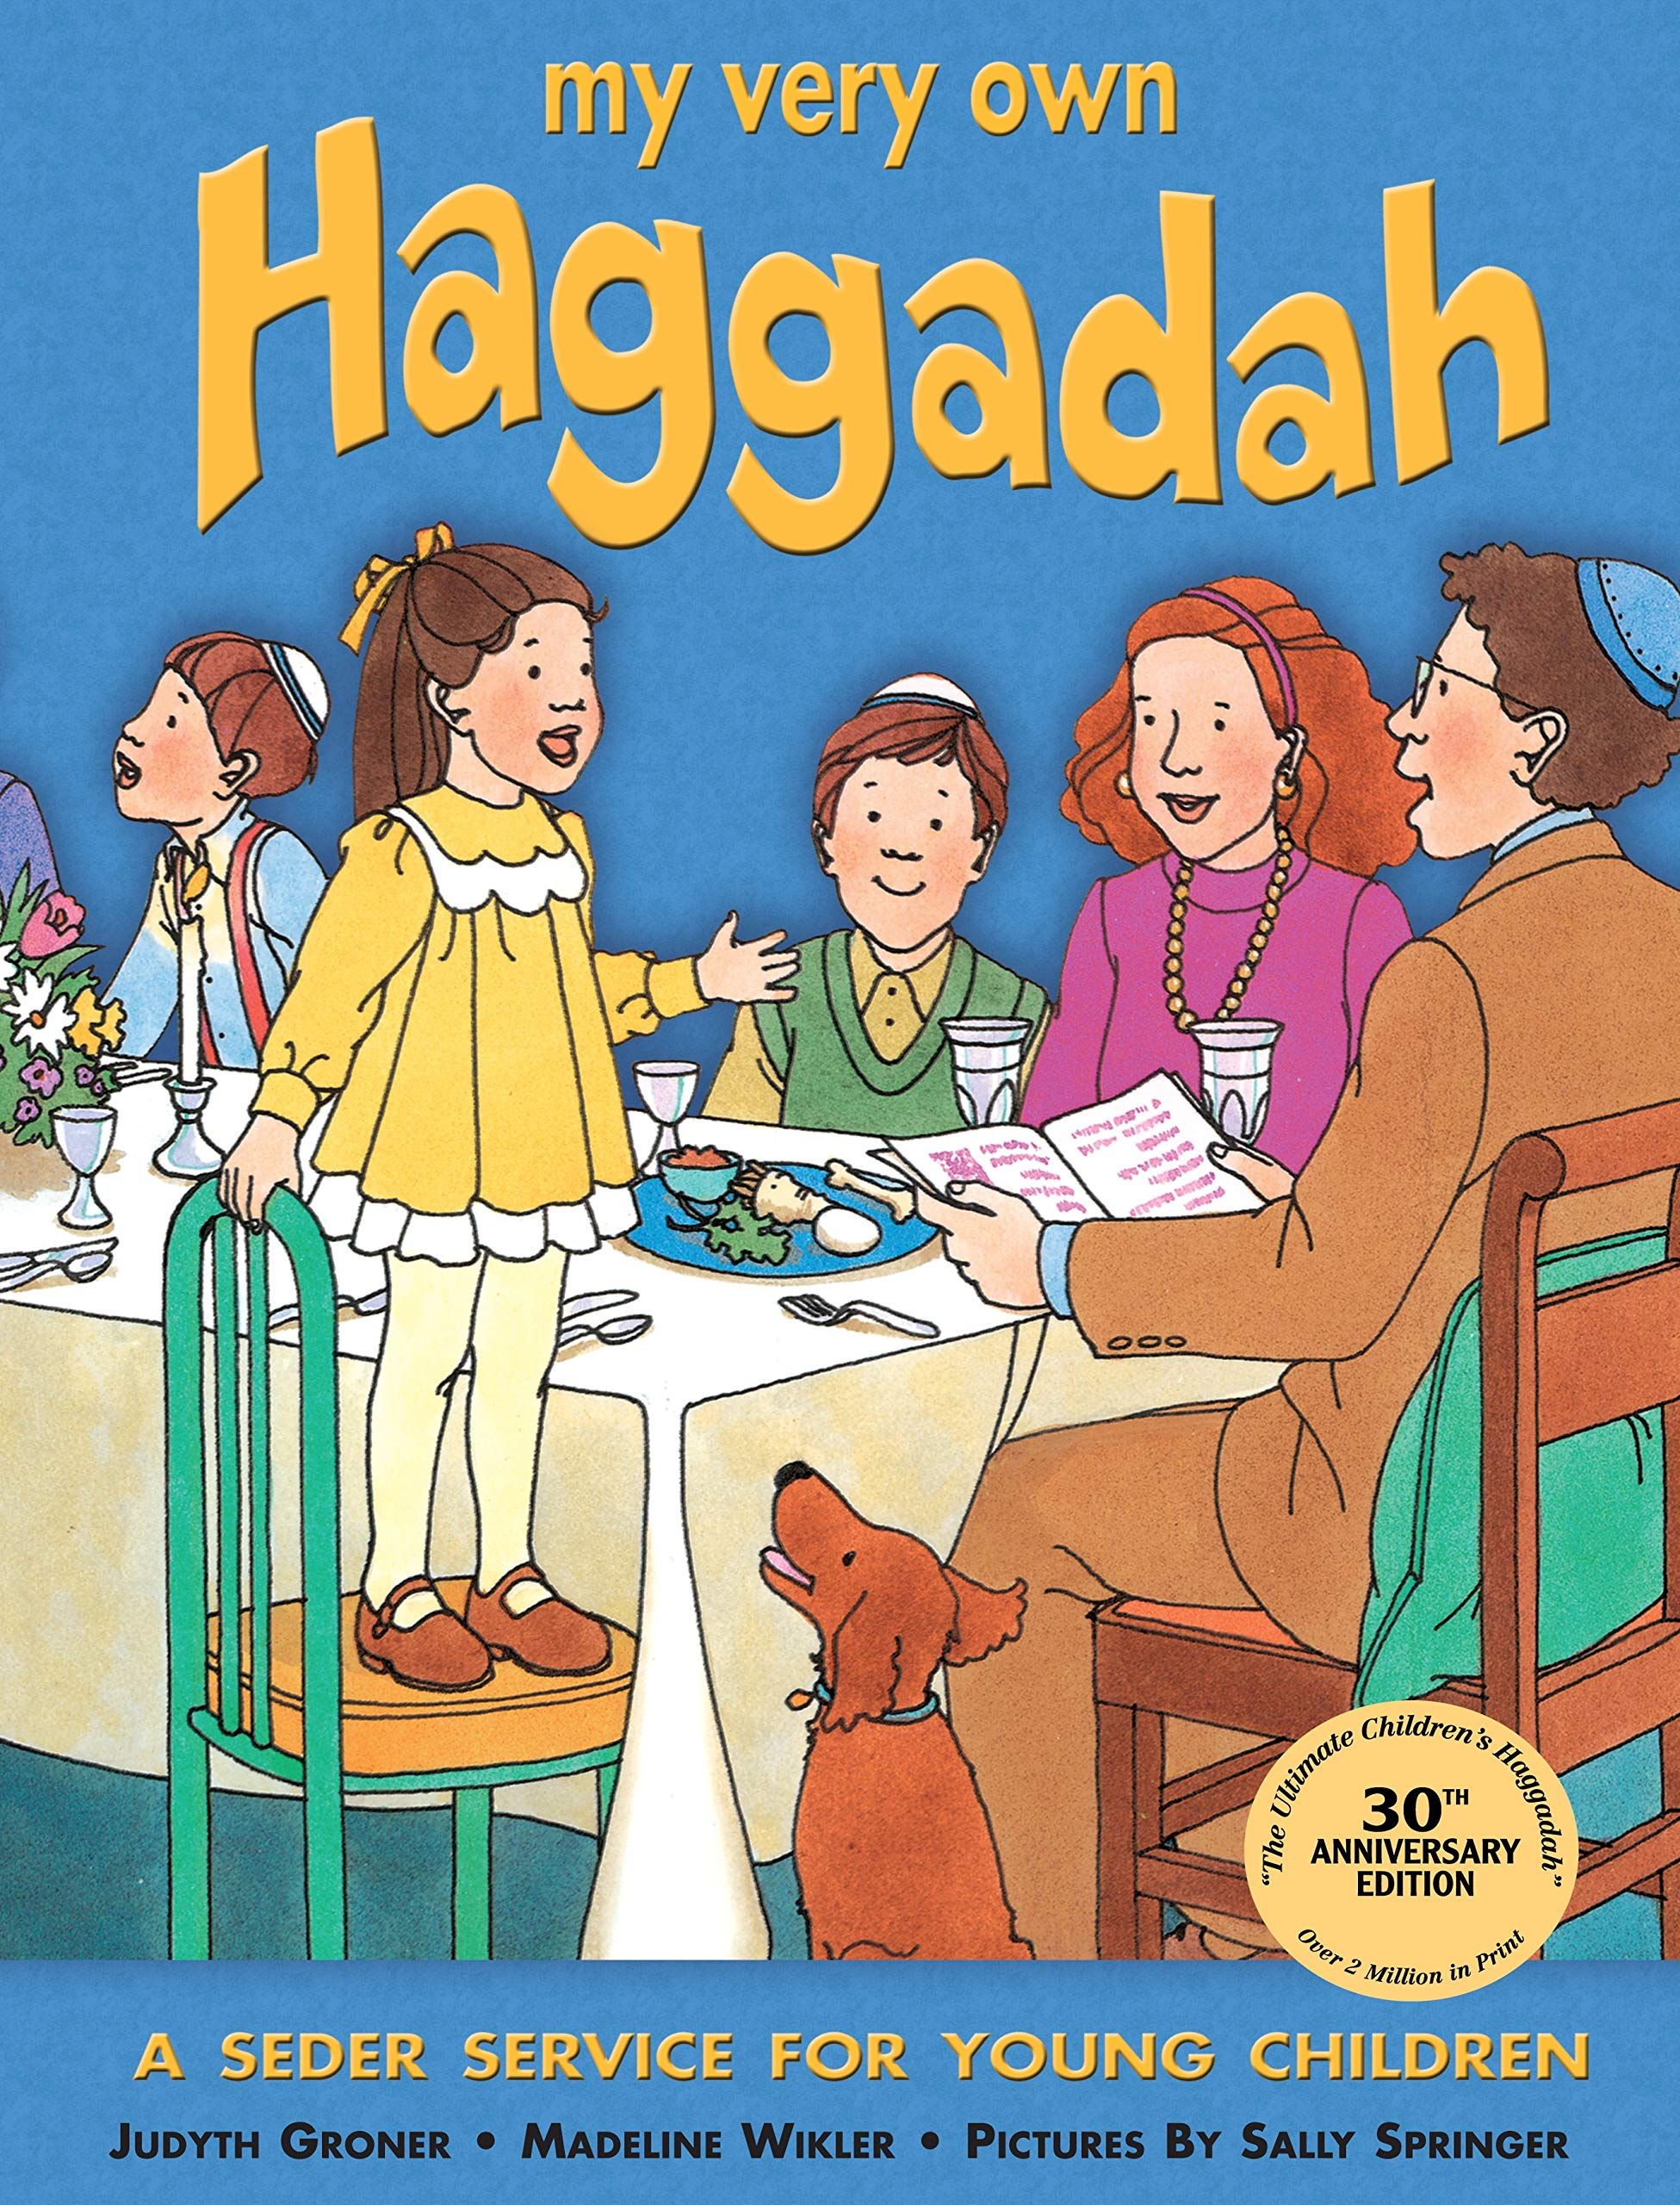 graphic relating to Children's Passover Seder Printable identify My Incredibly Particular Haggadah: A Seder Assistance for Younger Kids